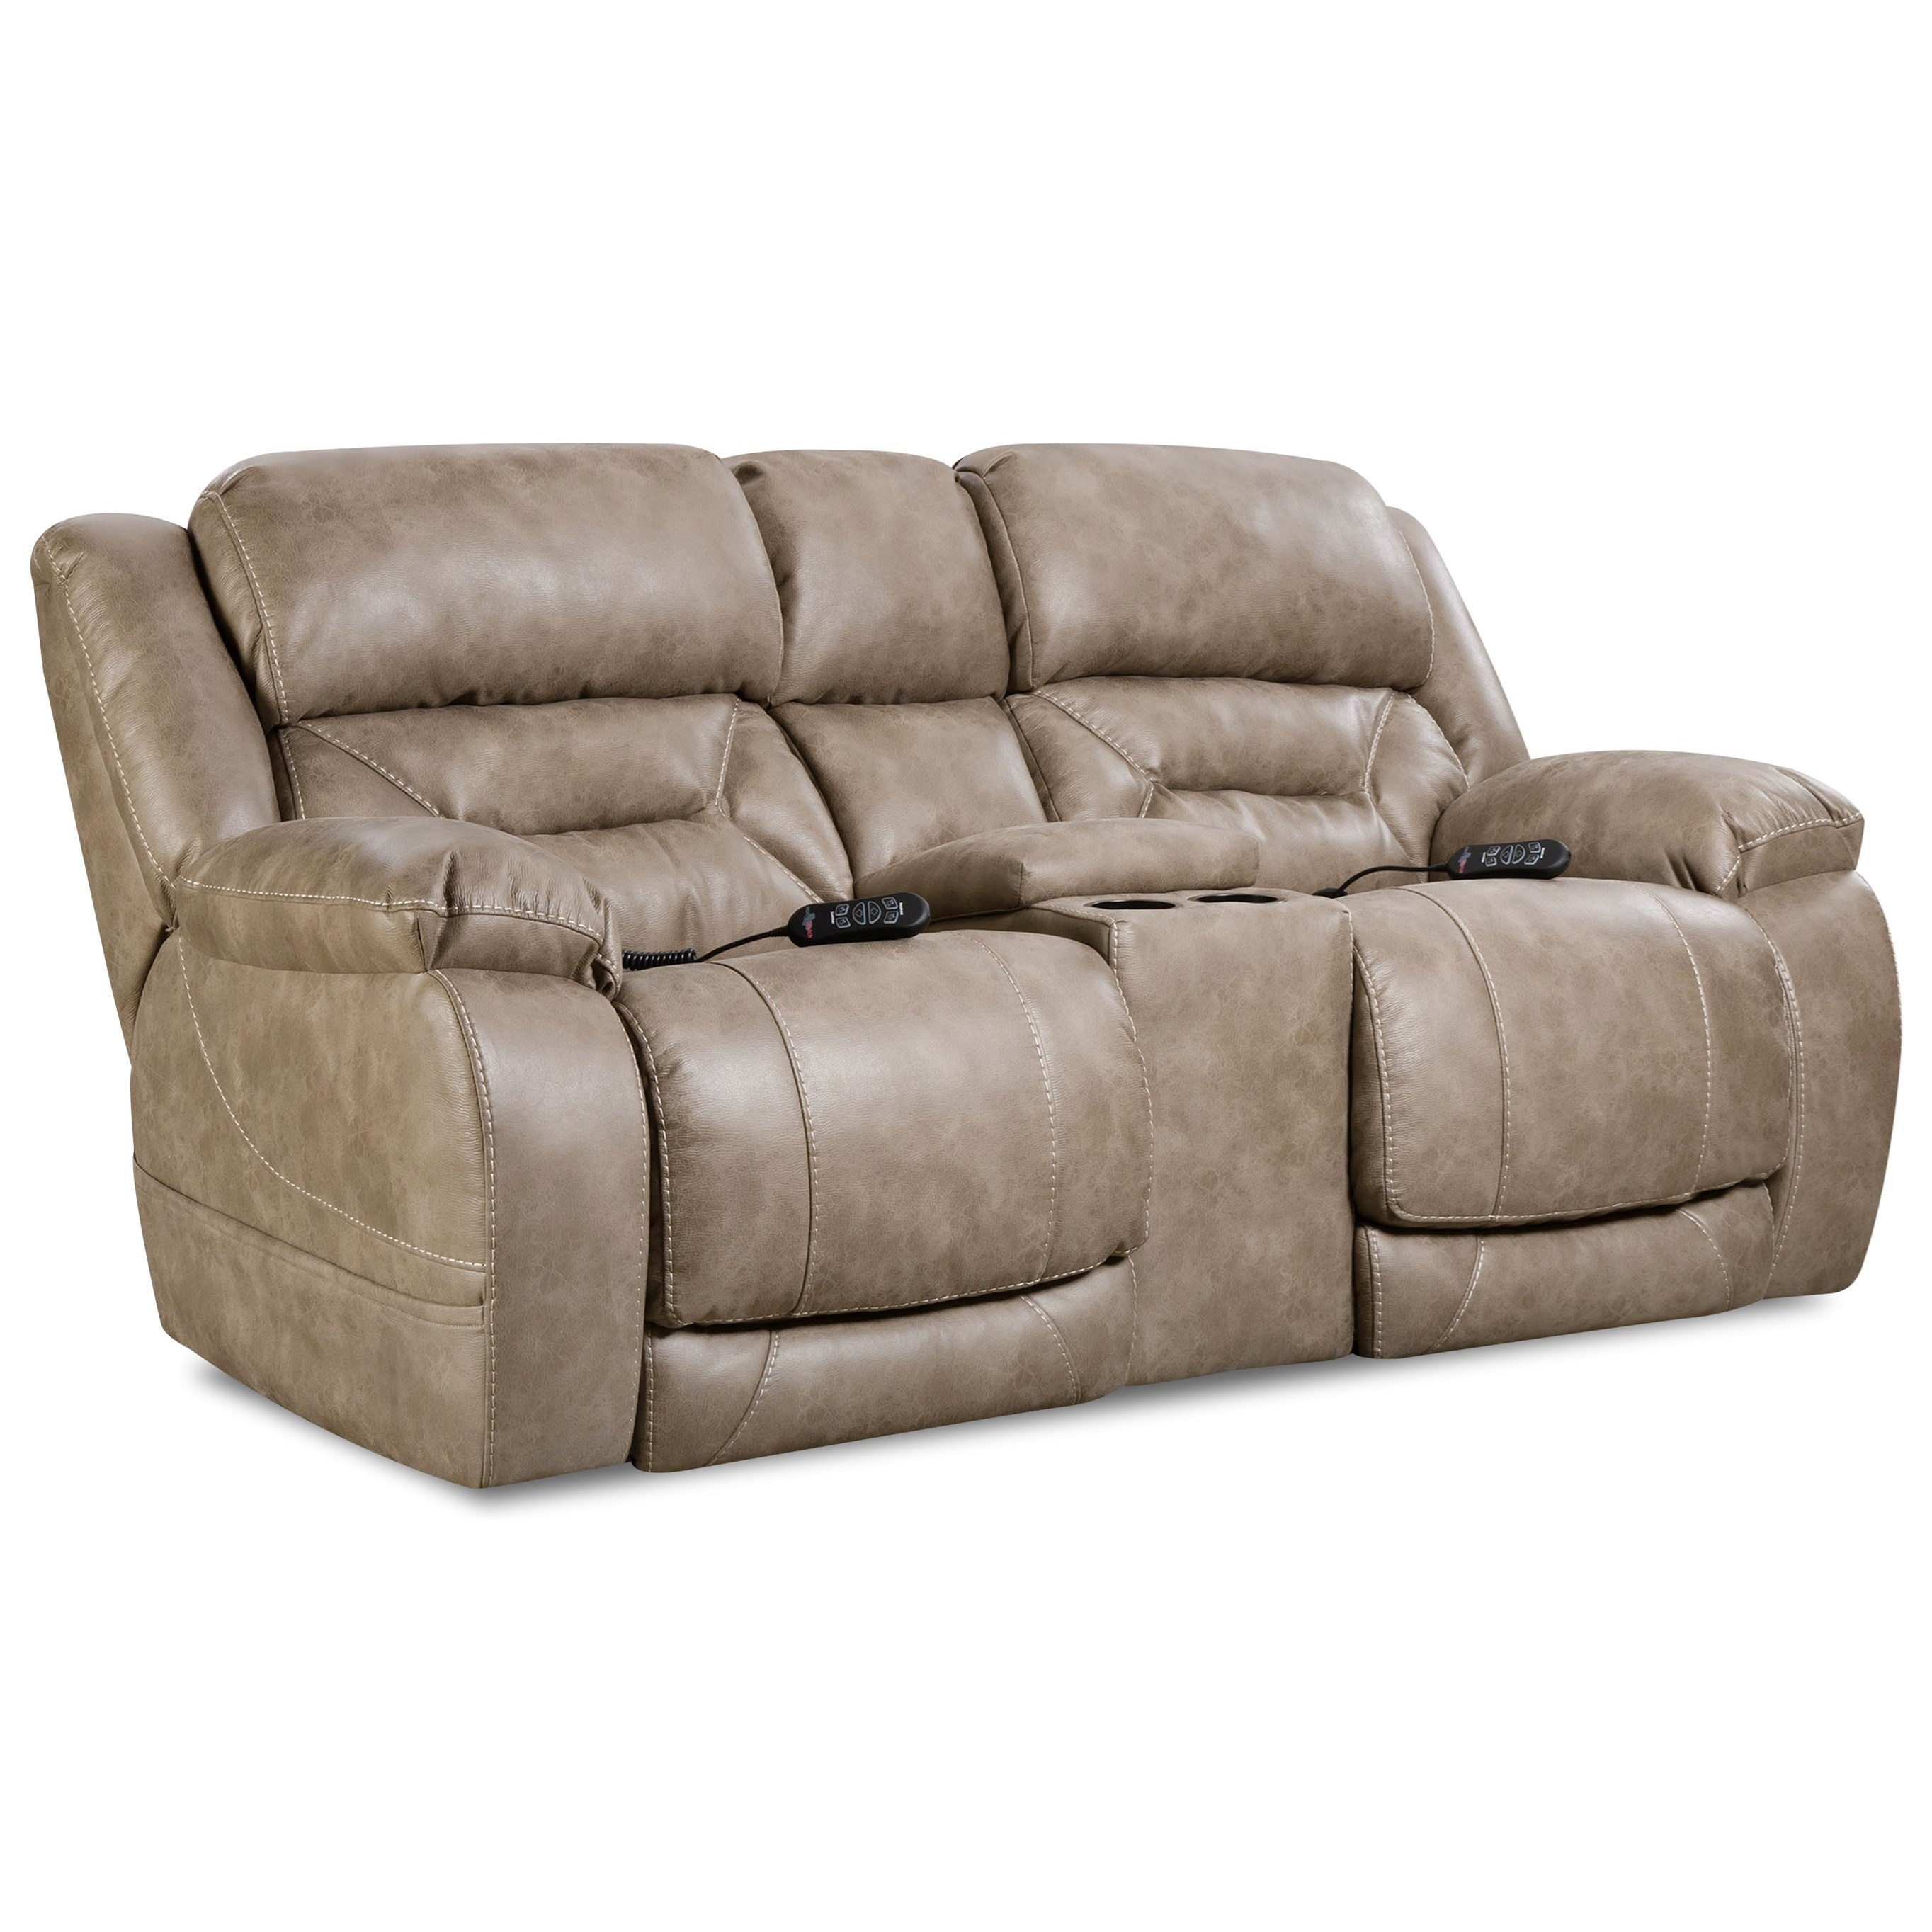 Enterprise Power Reclining Loveseat by HomeStretch at HomeWorld Furniture